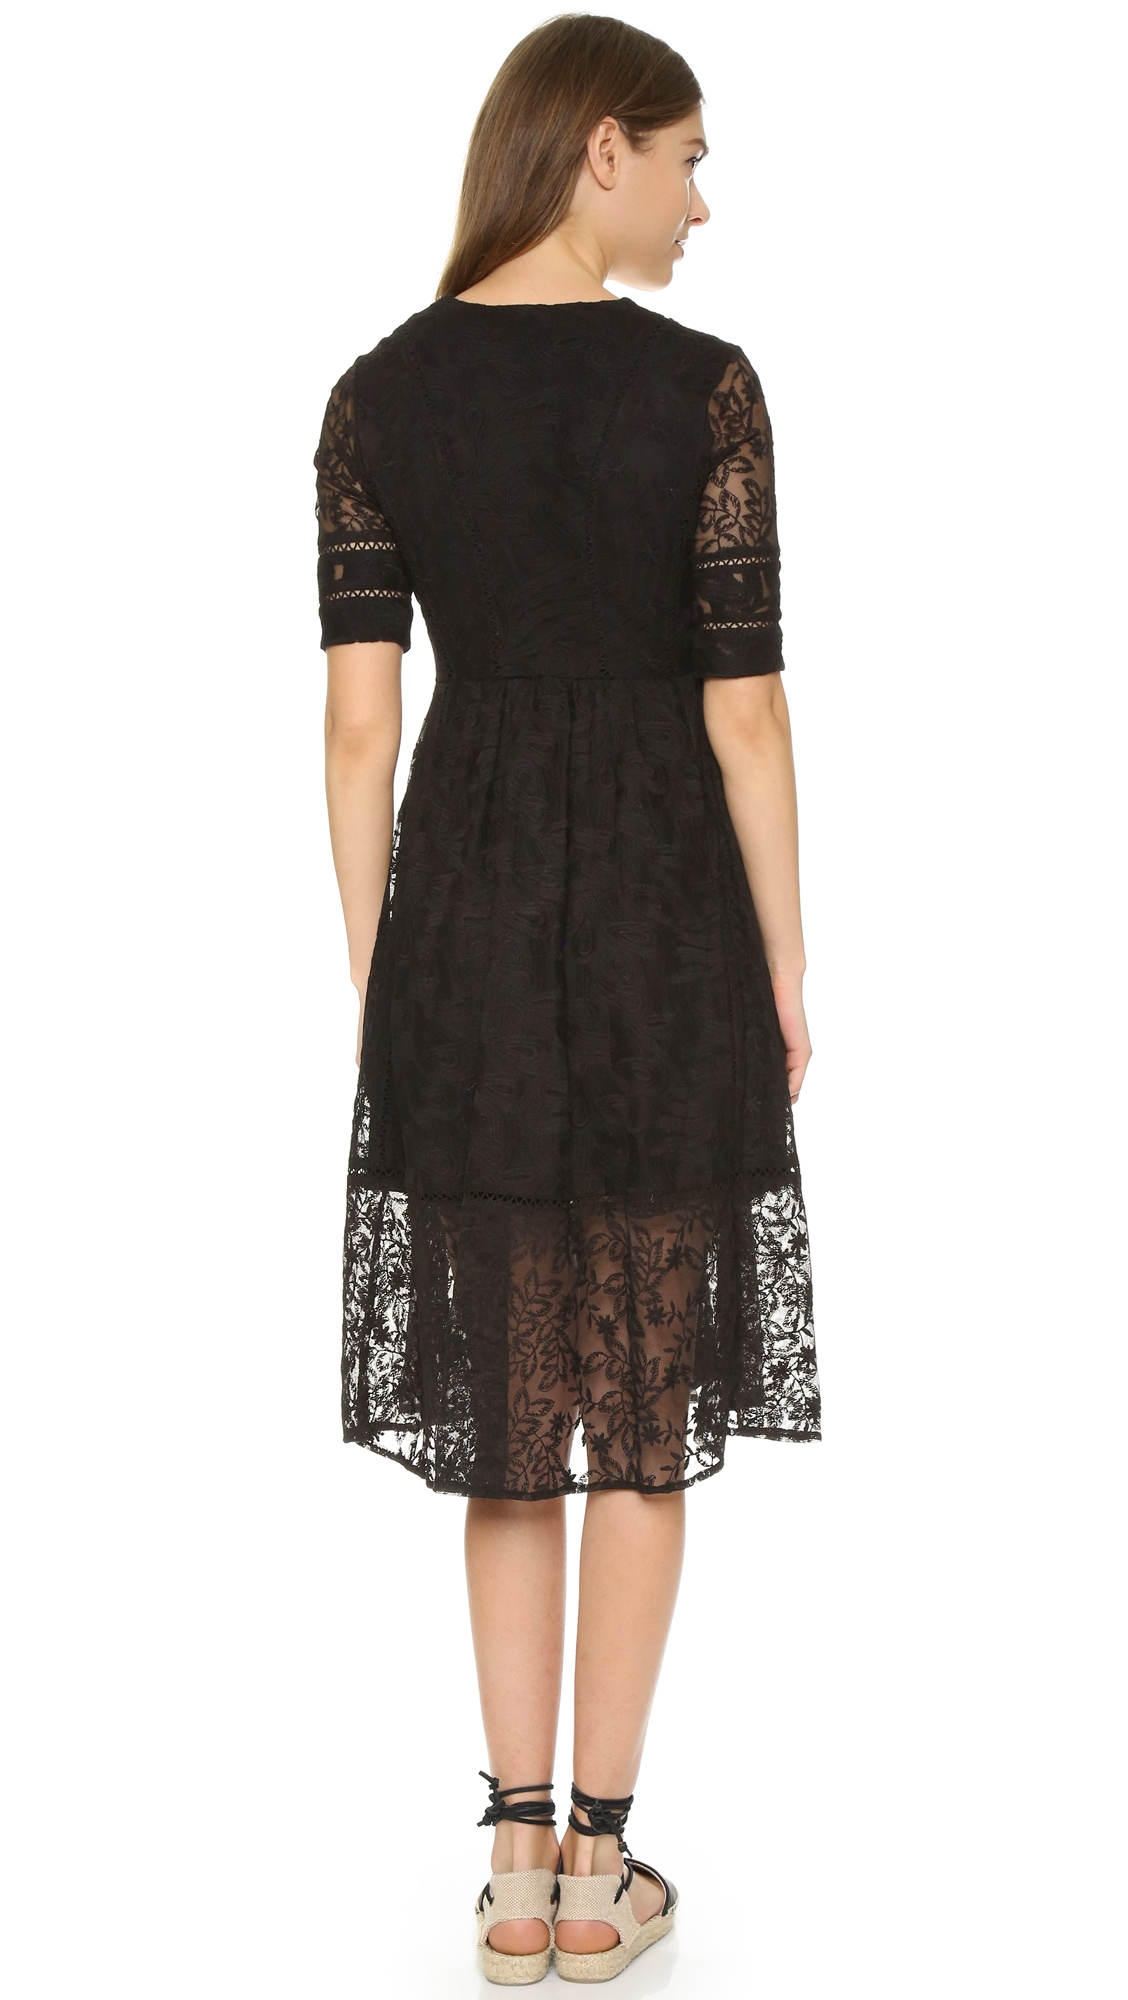 Free People Laurel Lace Dress In Black Lyst